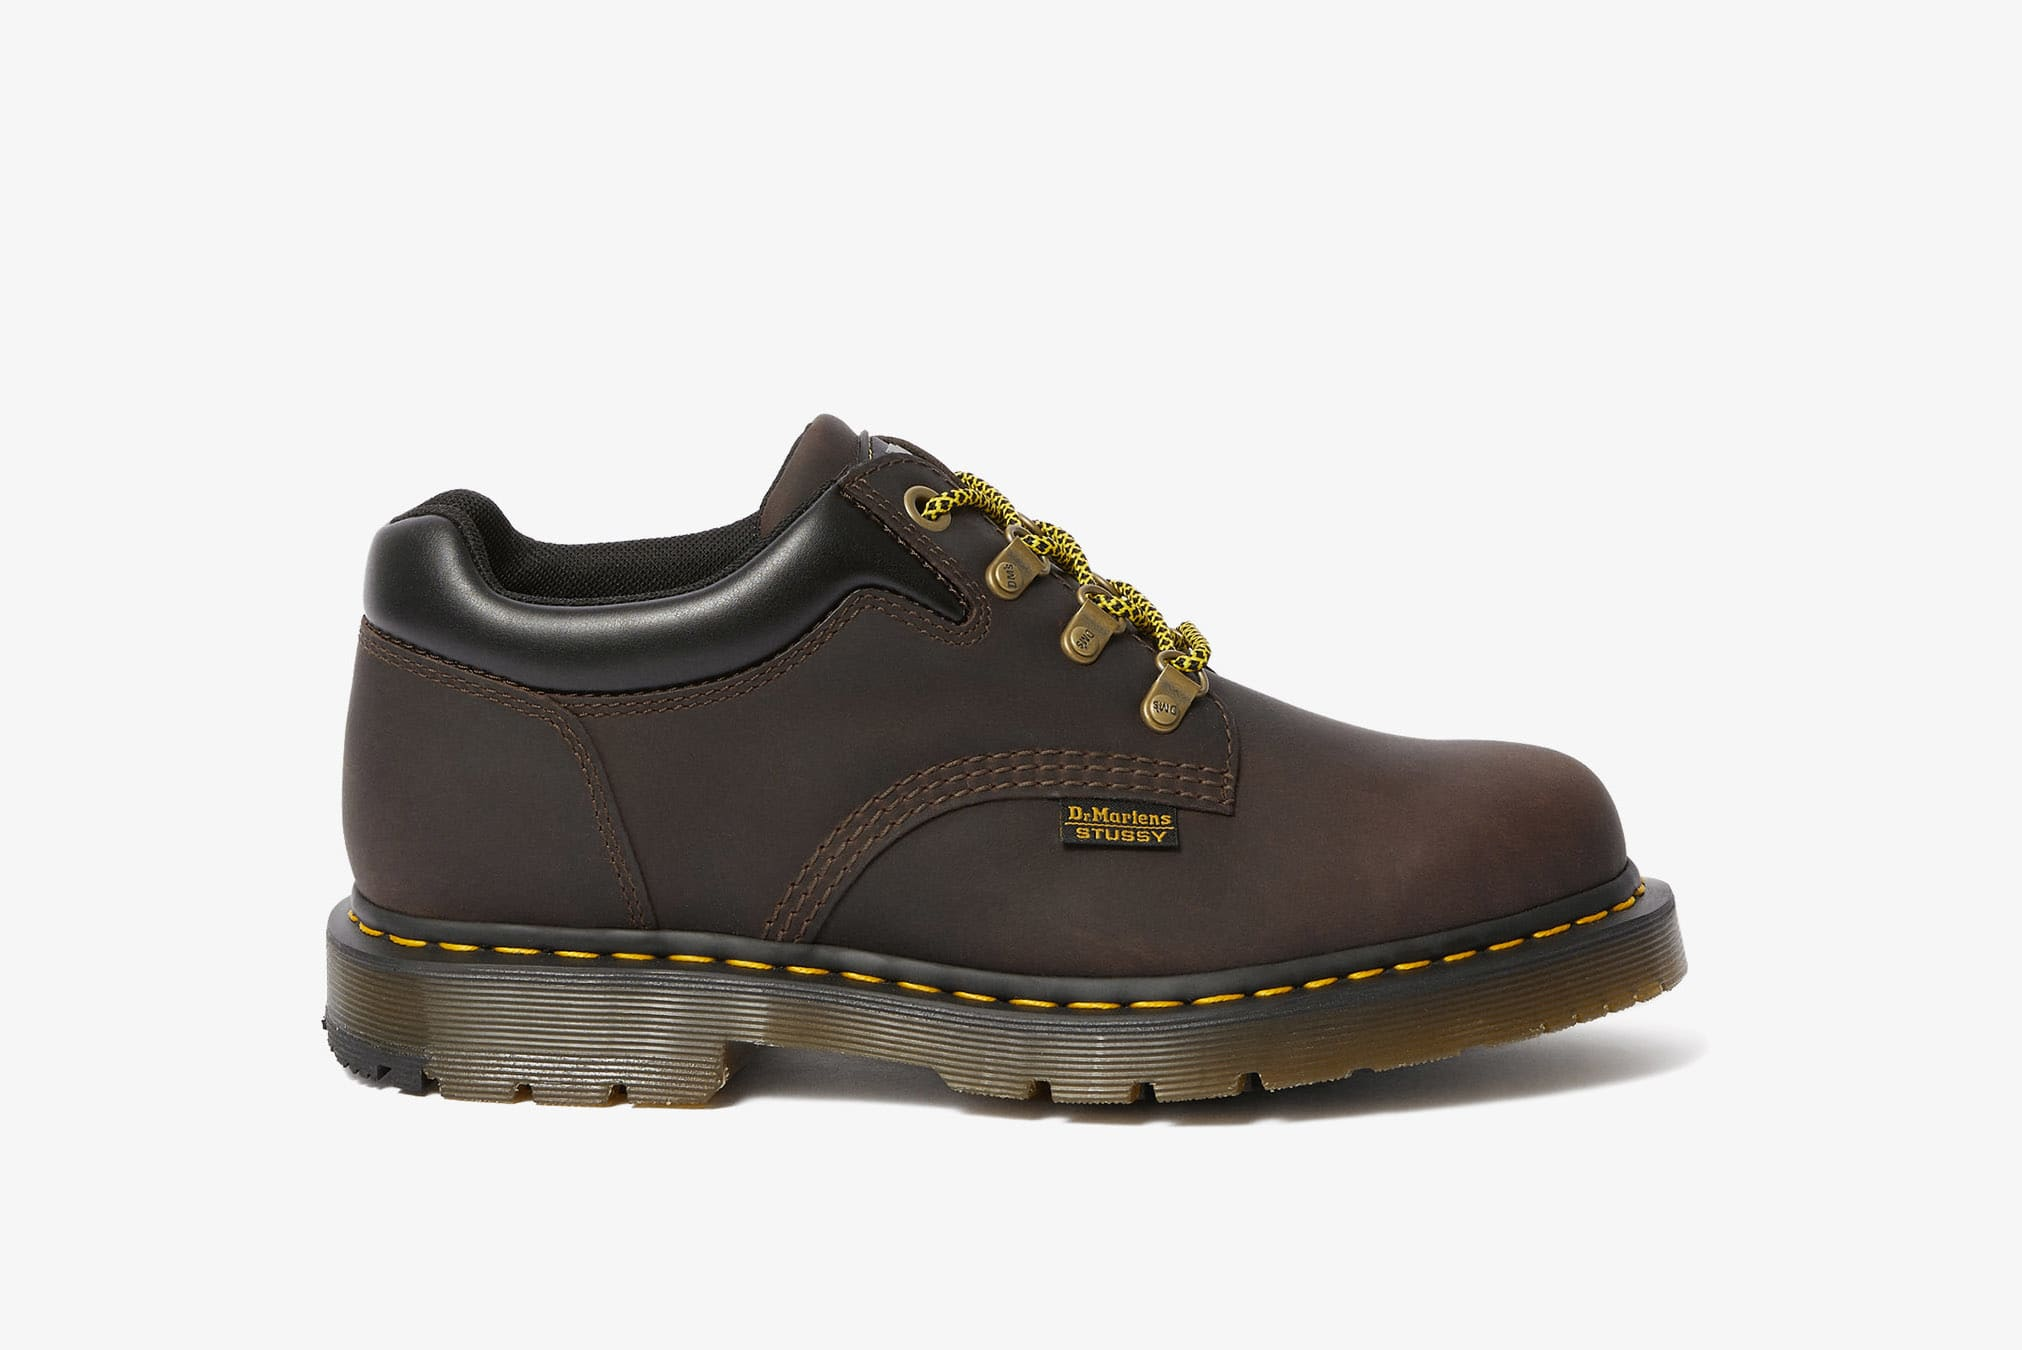 Dr. Martens x Stüssy 8053 HY Boot - 25916247